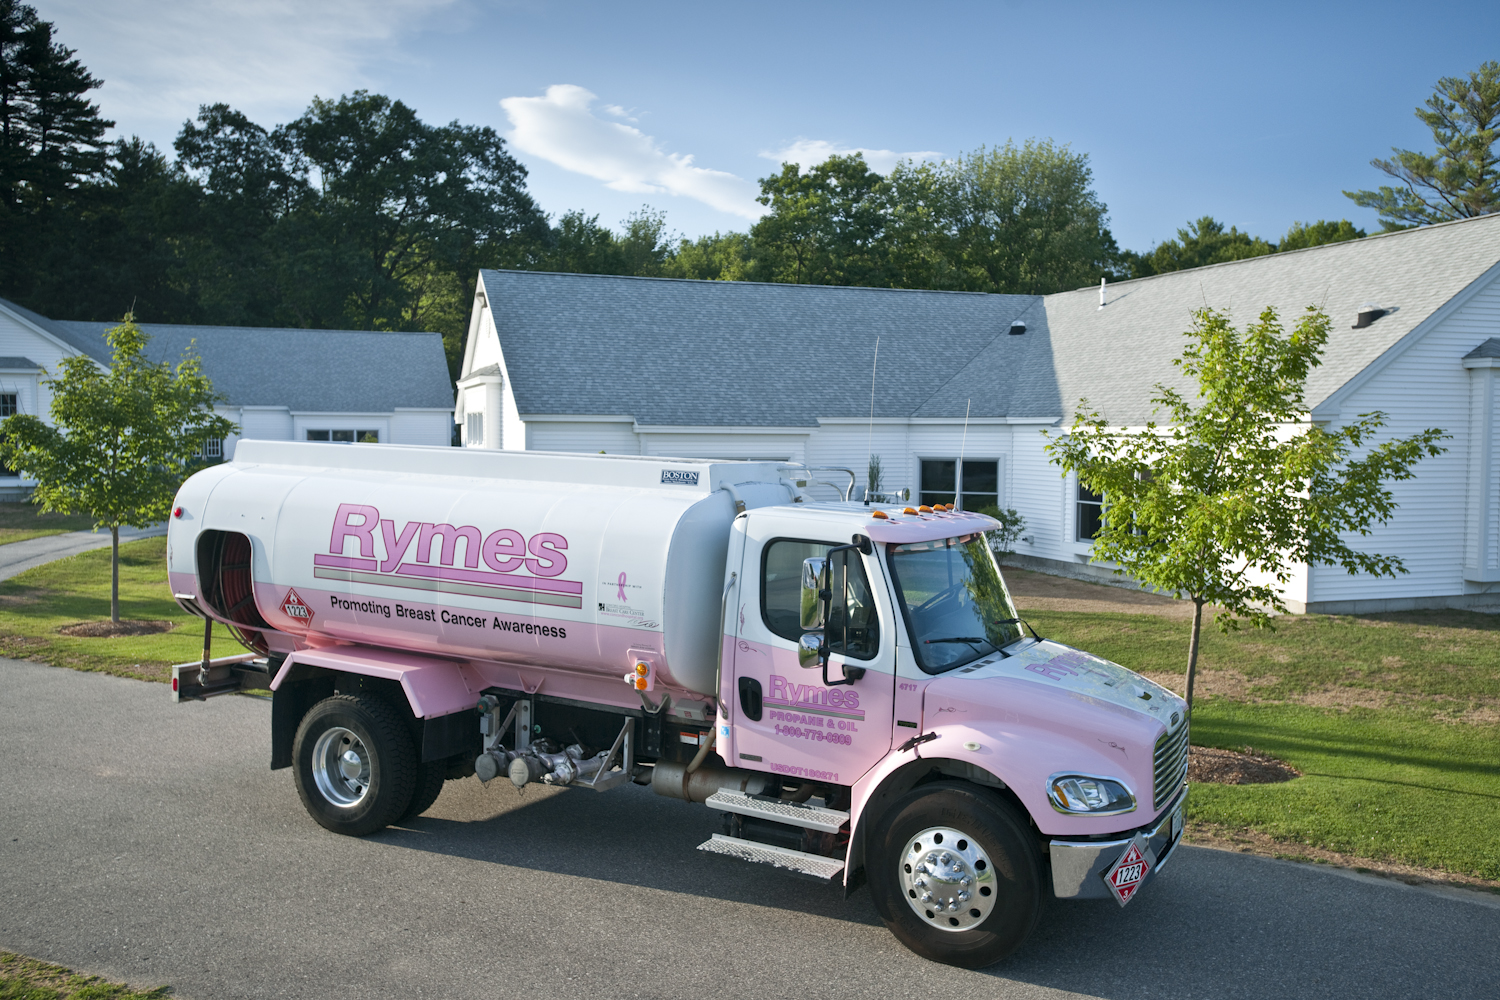 rymes truck home